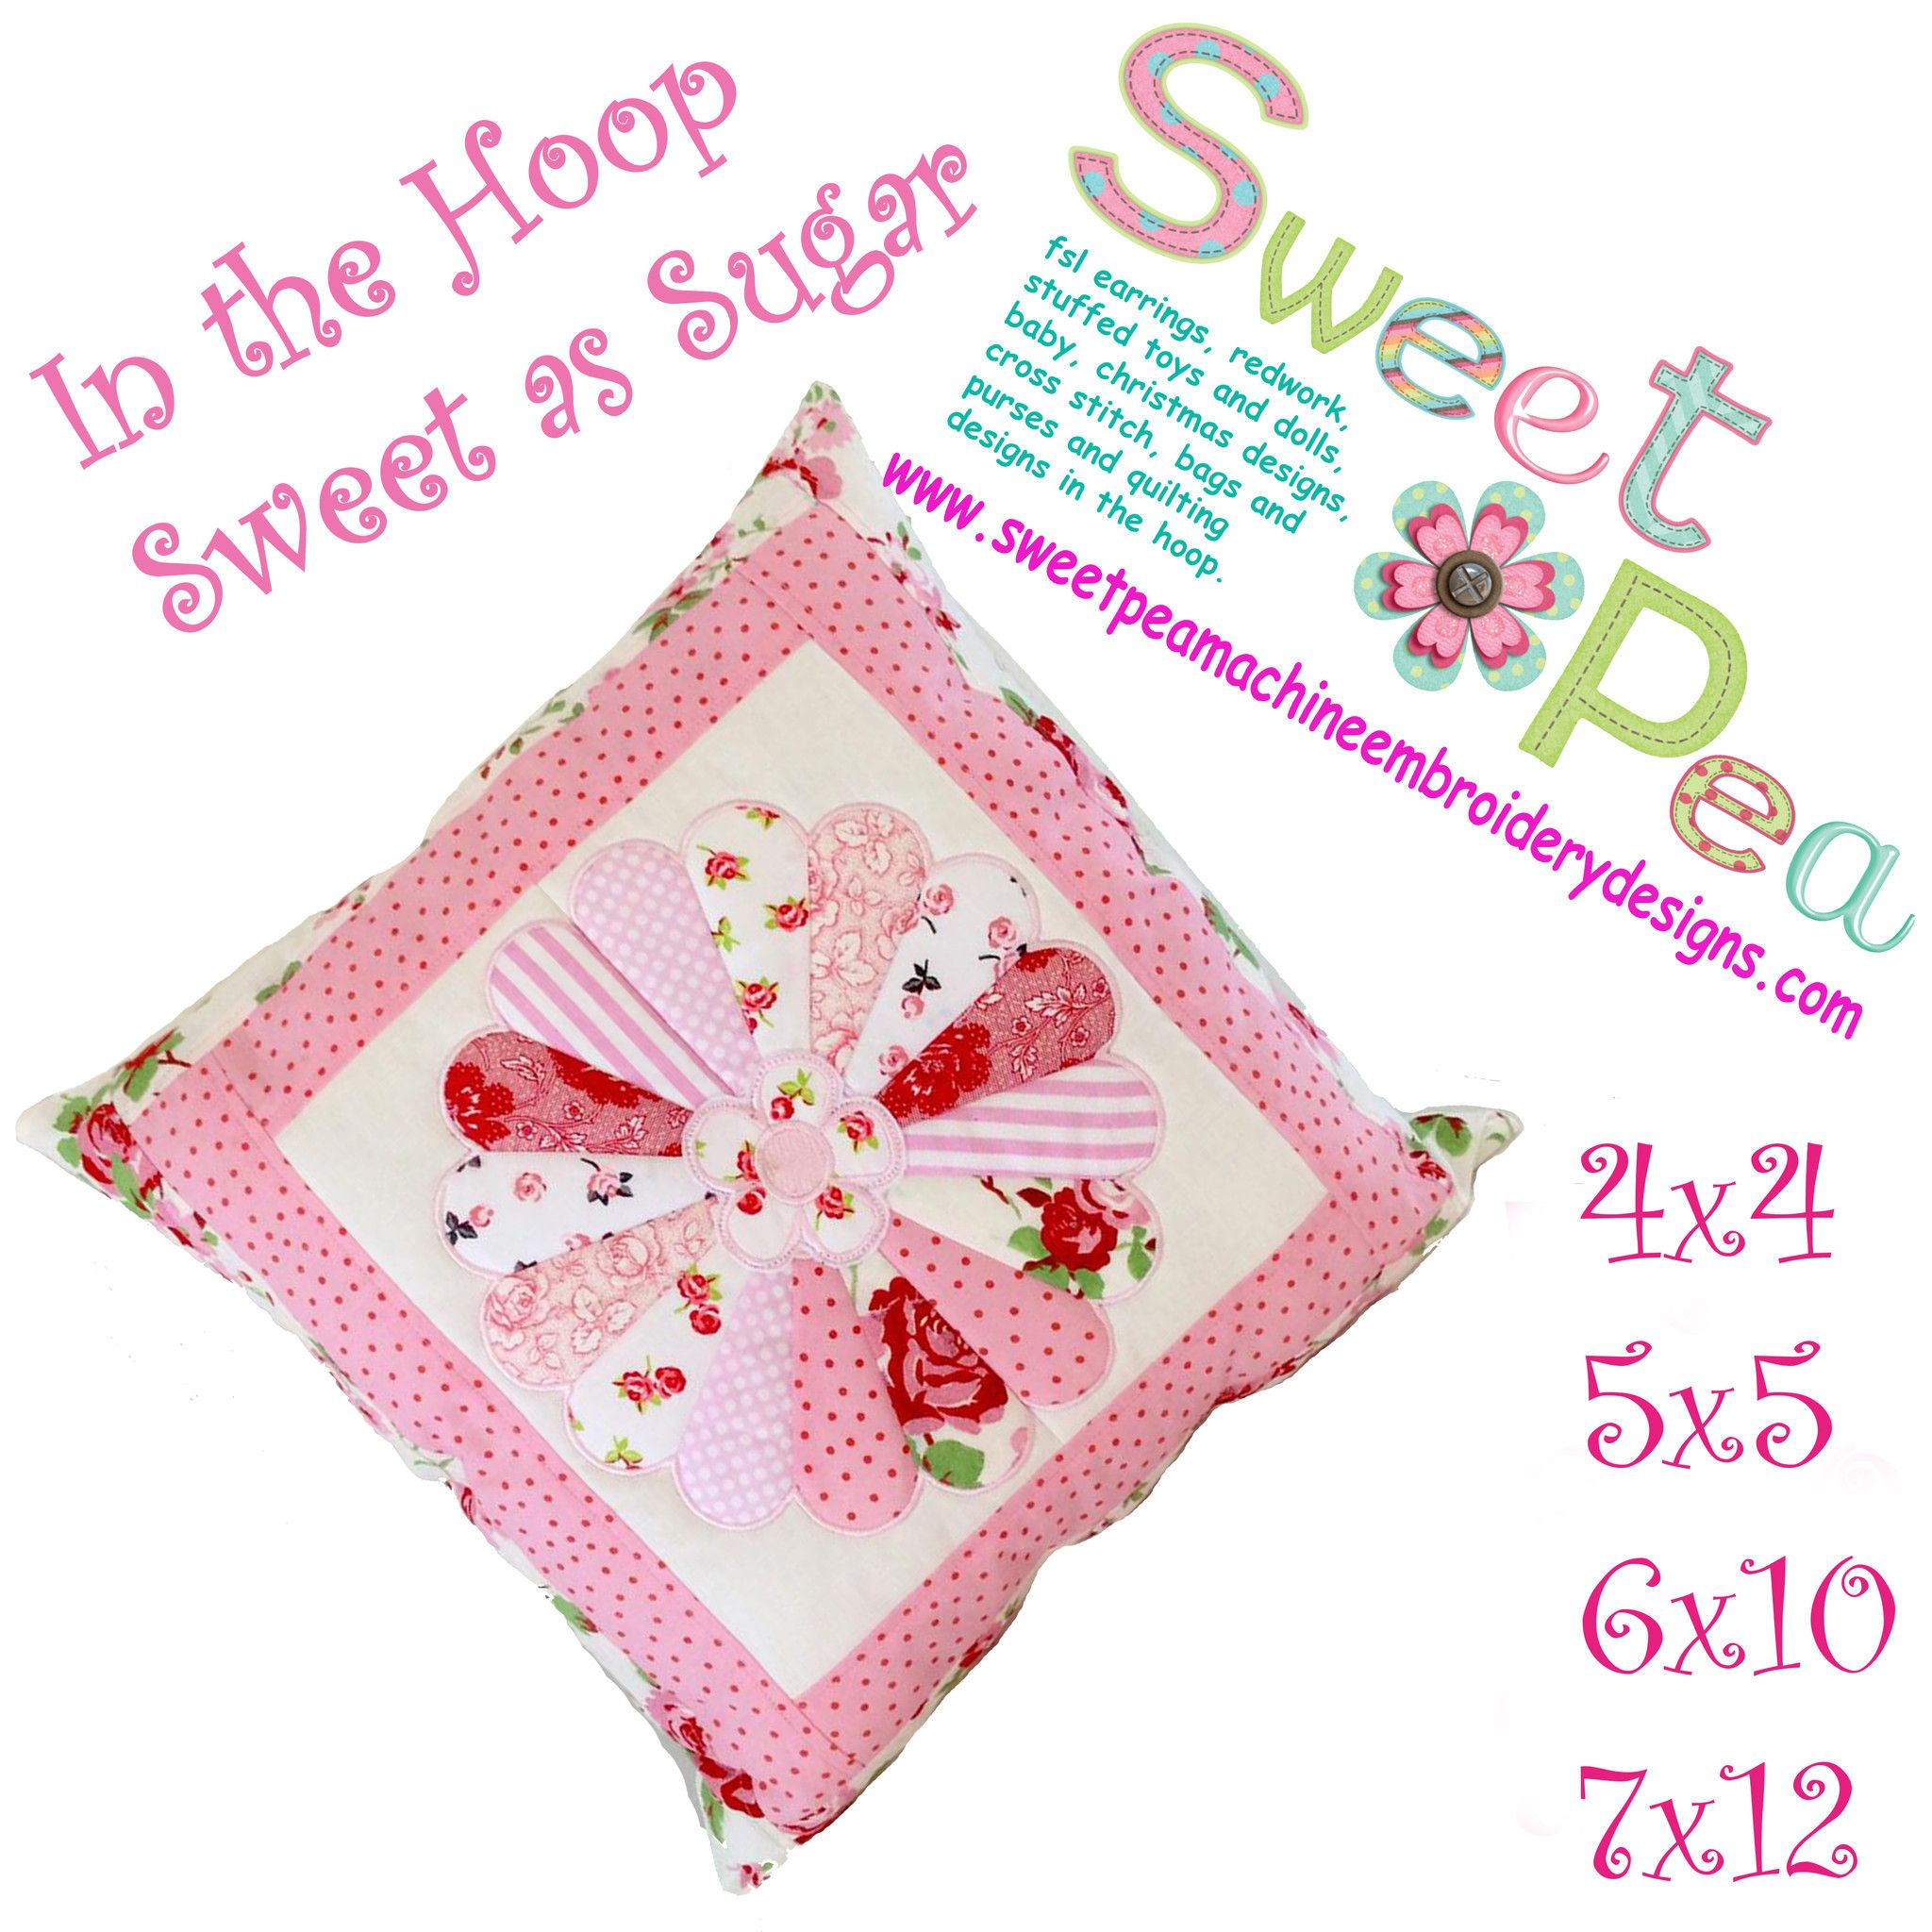 10 Best My Sweet Pea Embroidery Designs Images Embroidery Designs Machine Embroidery Quilts Embroidery